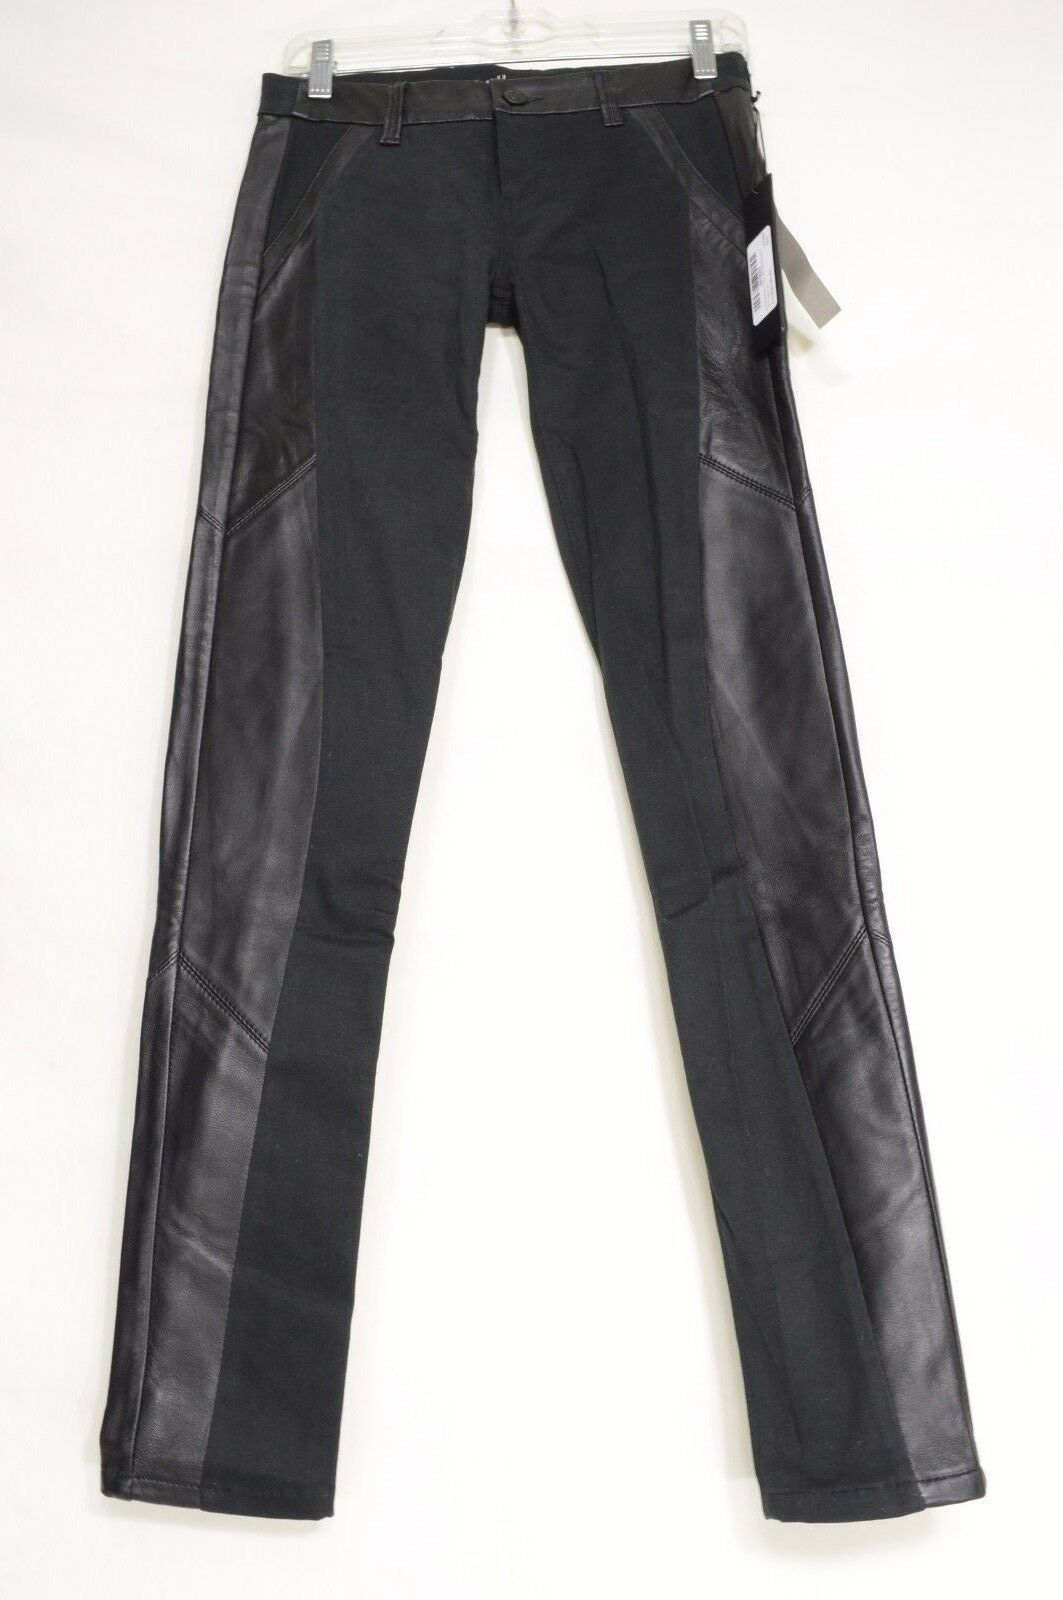 Primary image for SOLD Design Lab jeans leather trim NWT 25 x 30 USA legging Soho skinny black W30